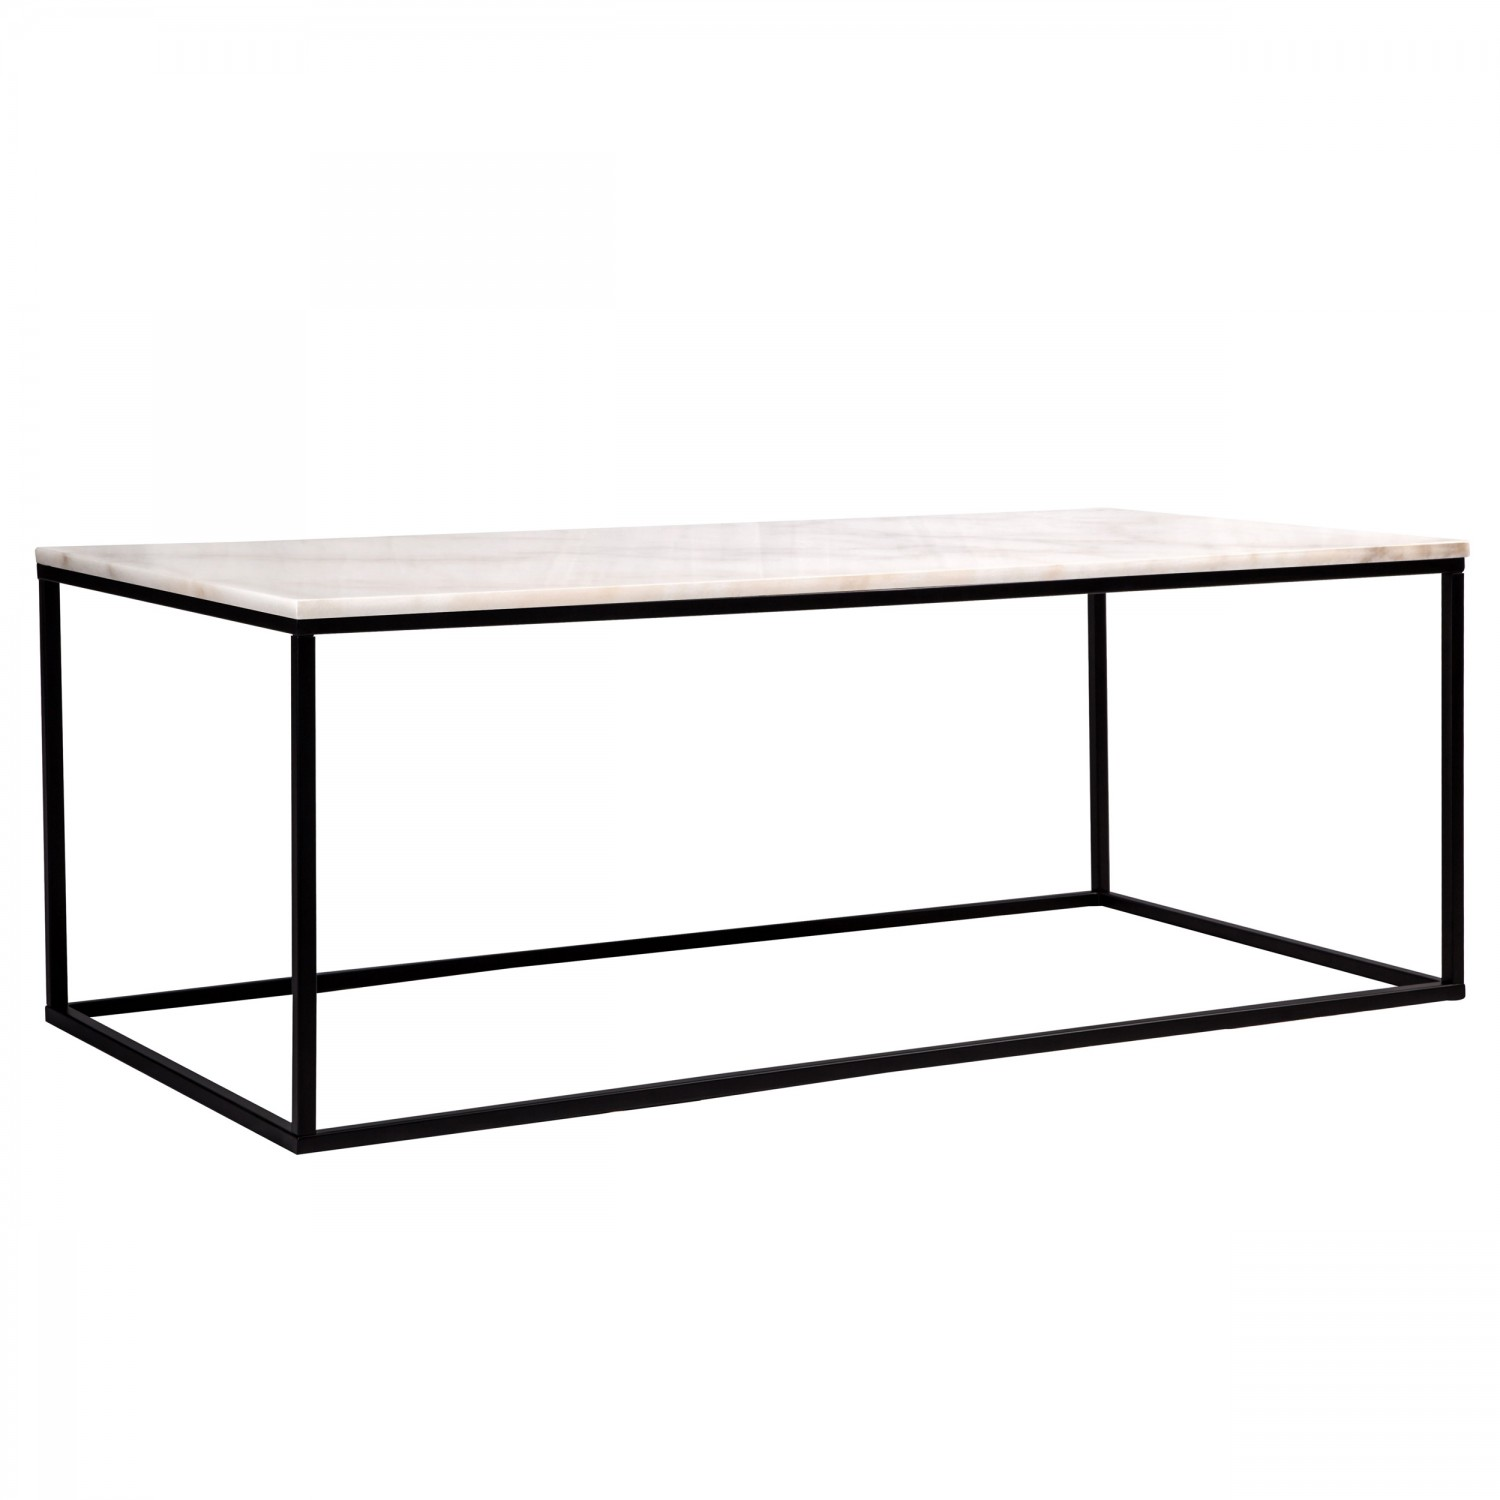 table basse rectangulaire lennart marbre blanche koya design. Black Bedroom Furniture Sets. Home Design Ideas